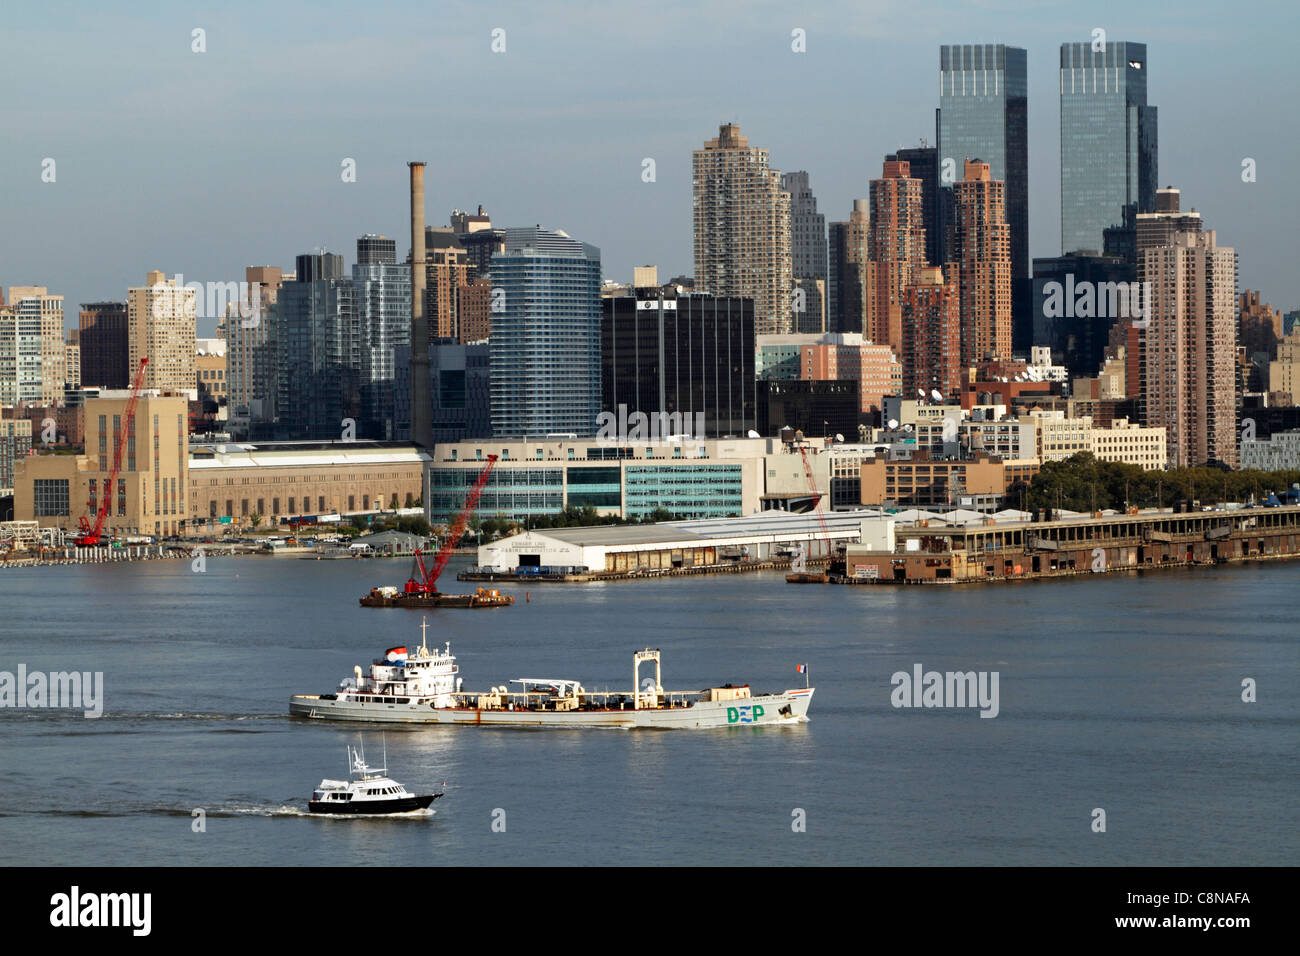 Boats on the Hudson River passing passing Manhattan skyline. - Stock Image